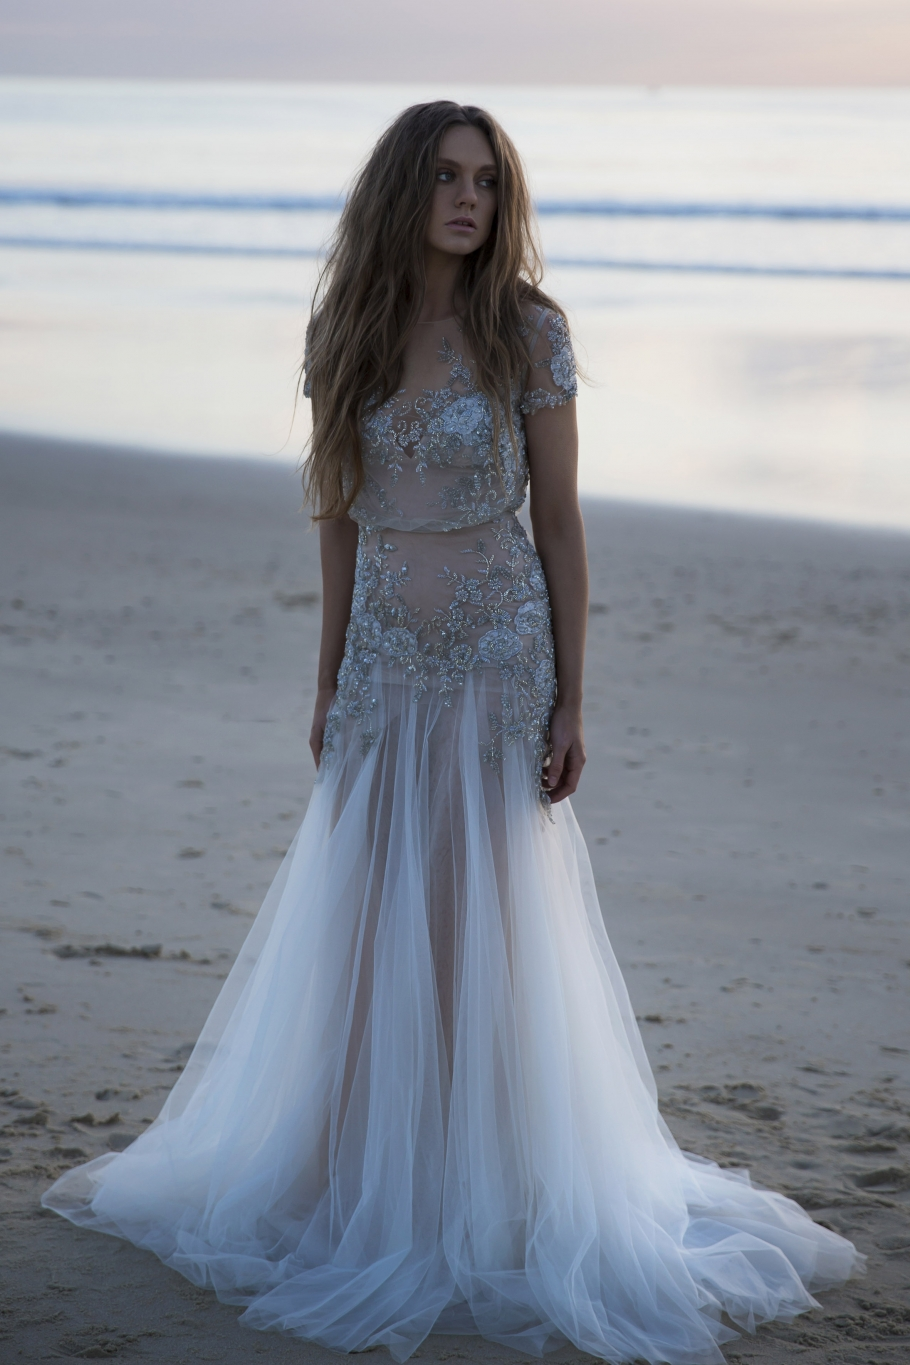 Inbal Dror gown via The Lane